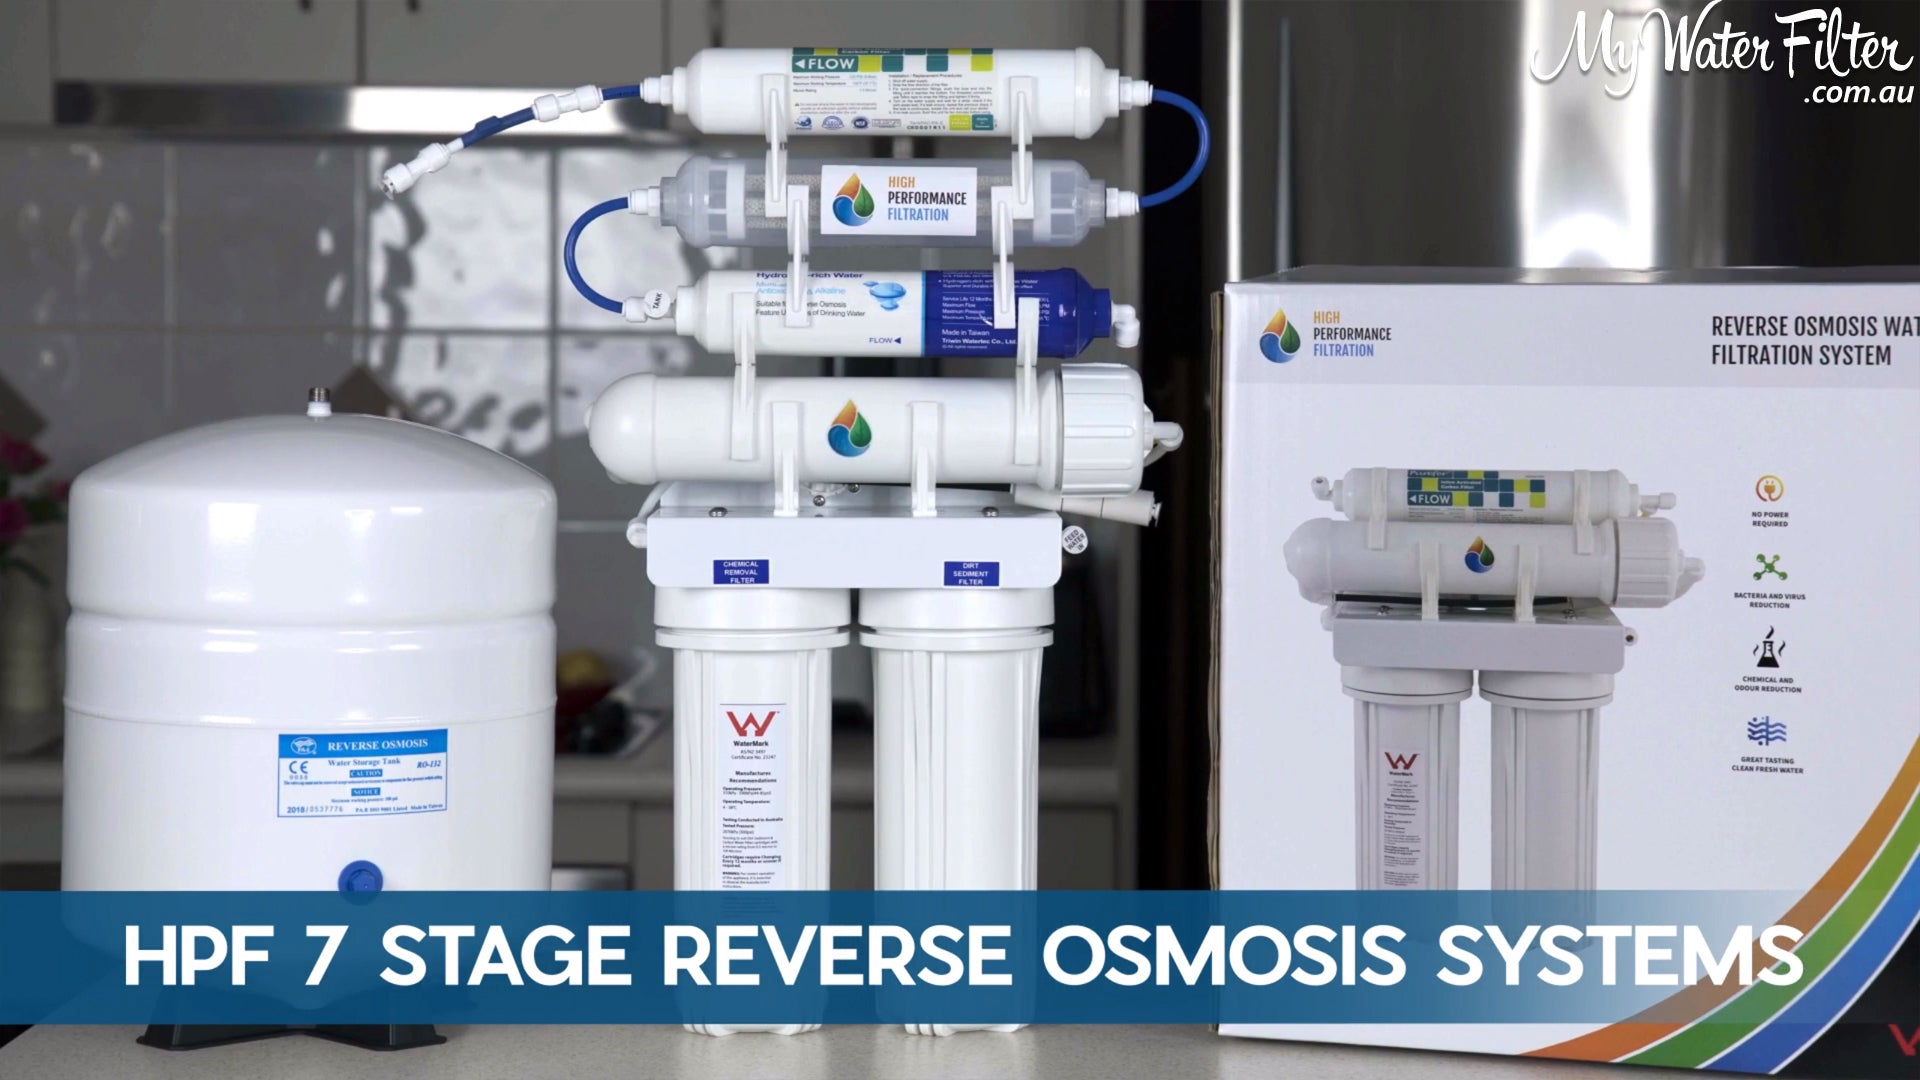 HPF 7 Stage Reverse Osmosis